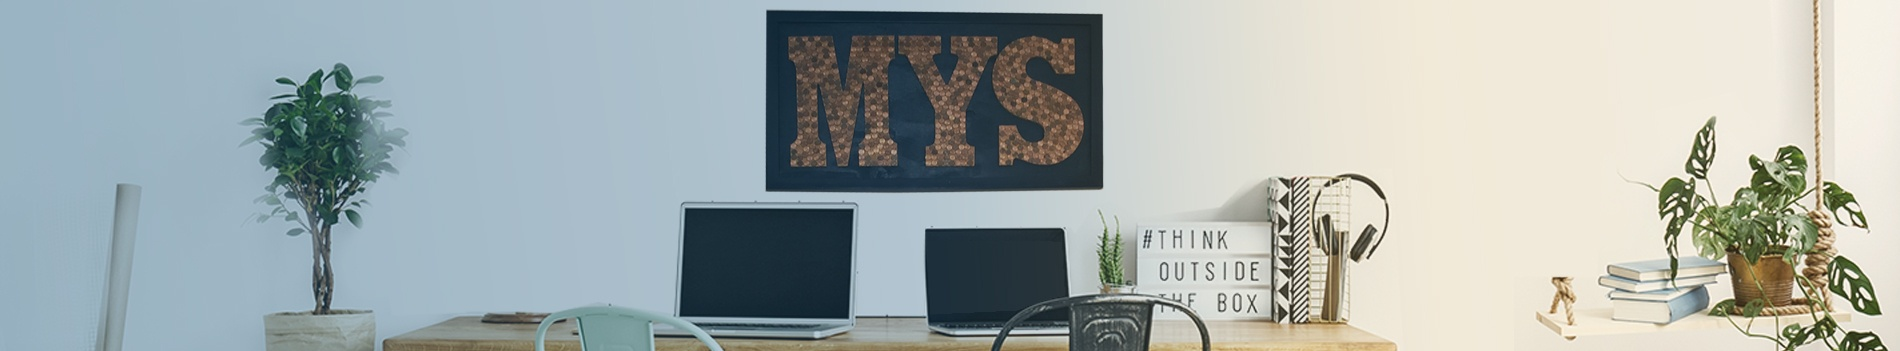 office desk and MYS sign